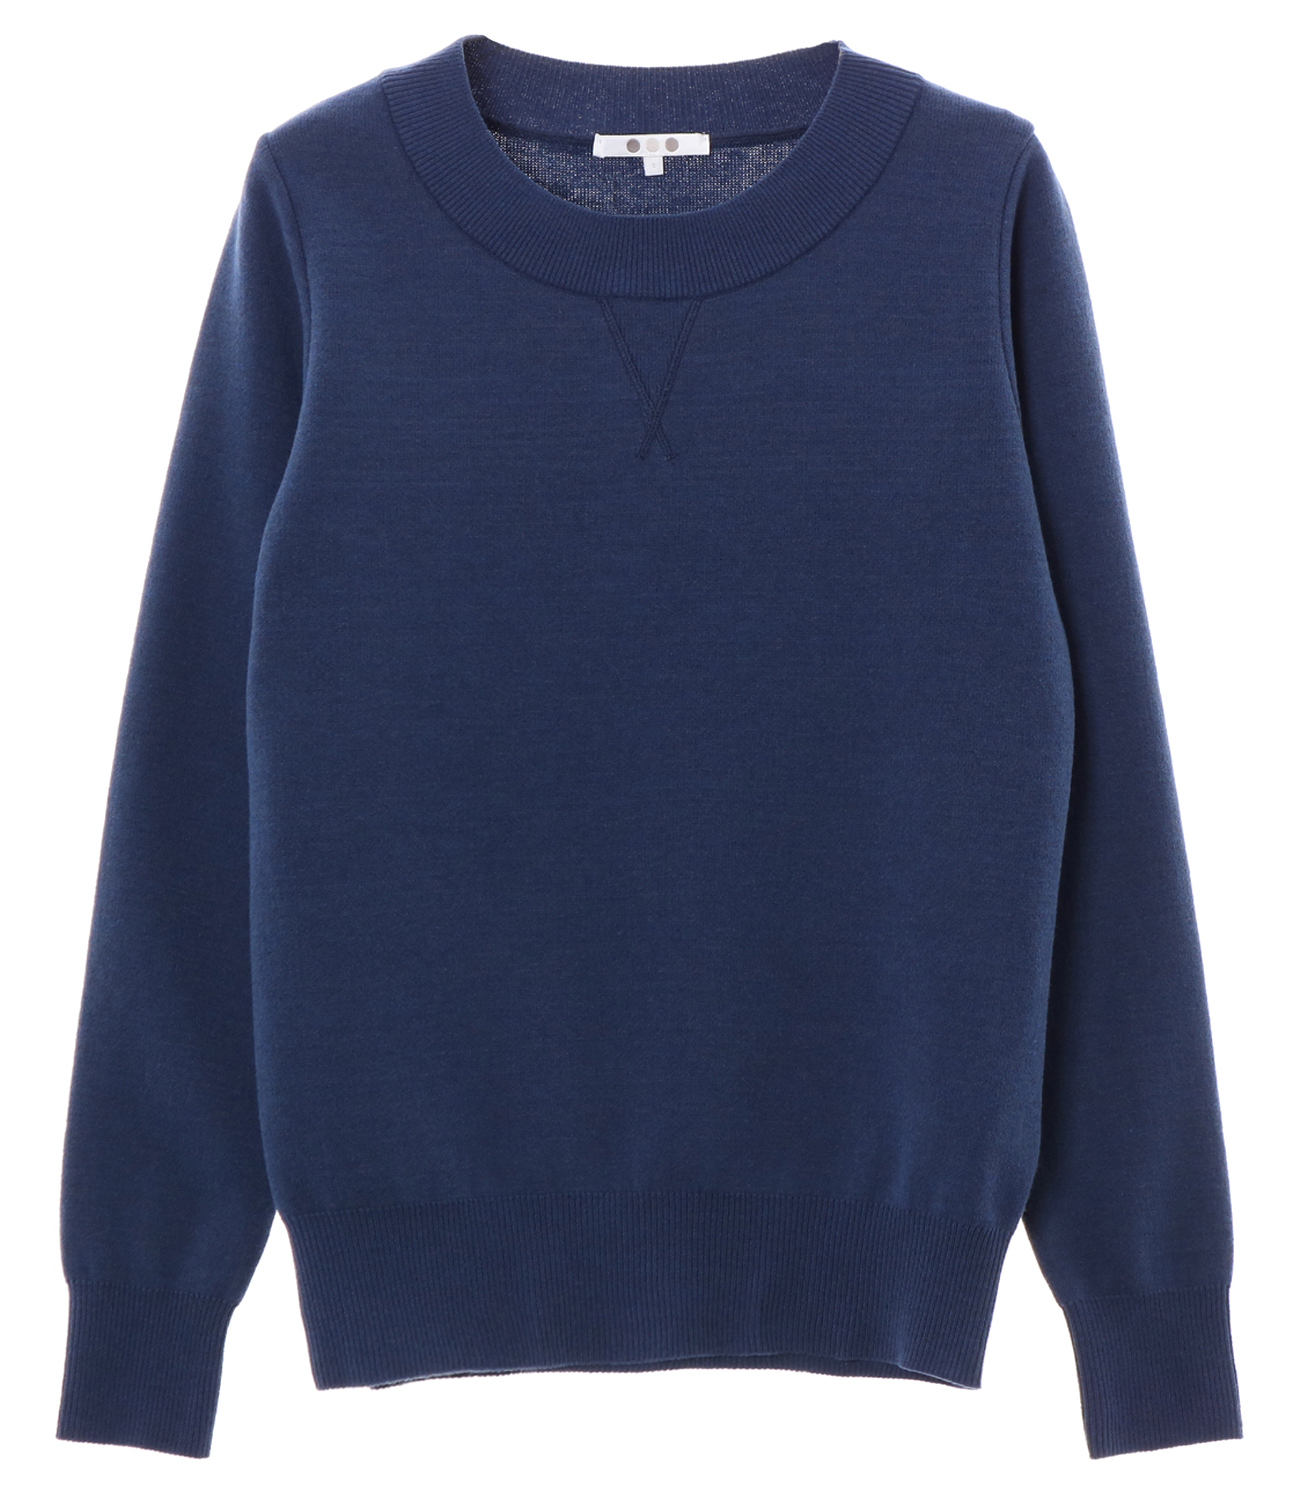 warm cotton l/s crew neck 詳細画像 navy 1